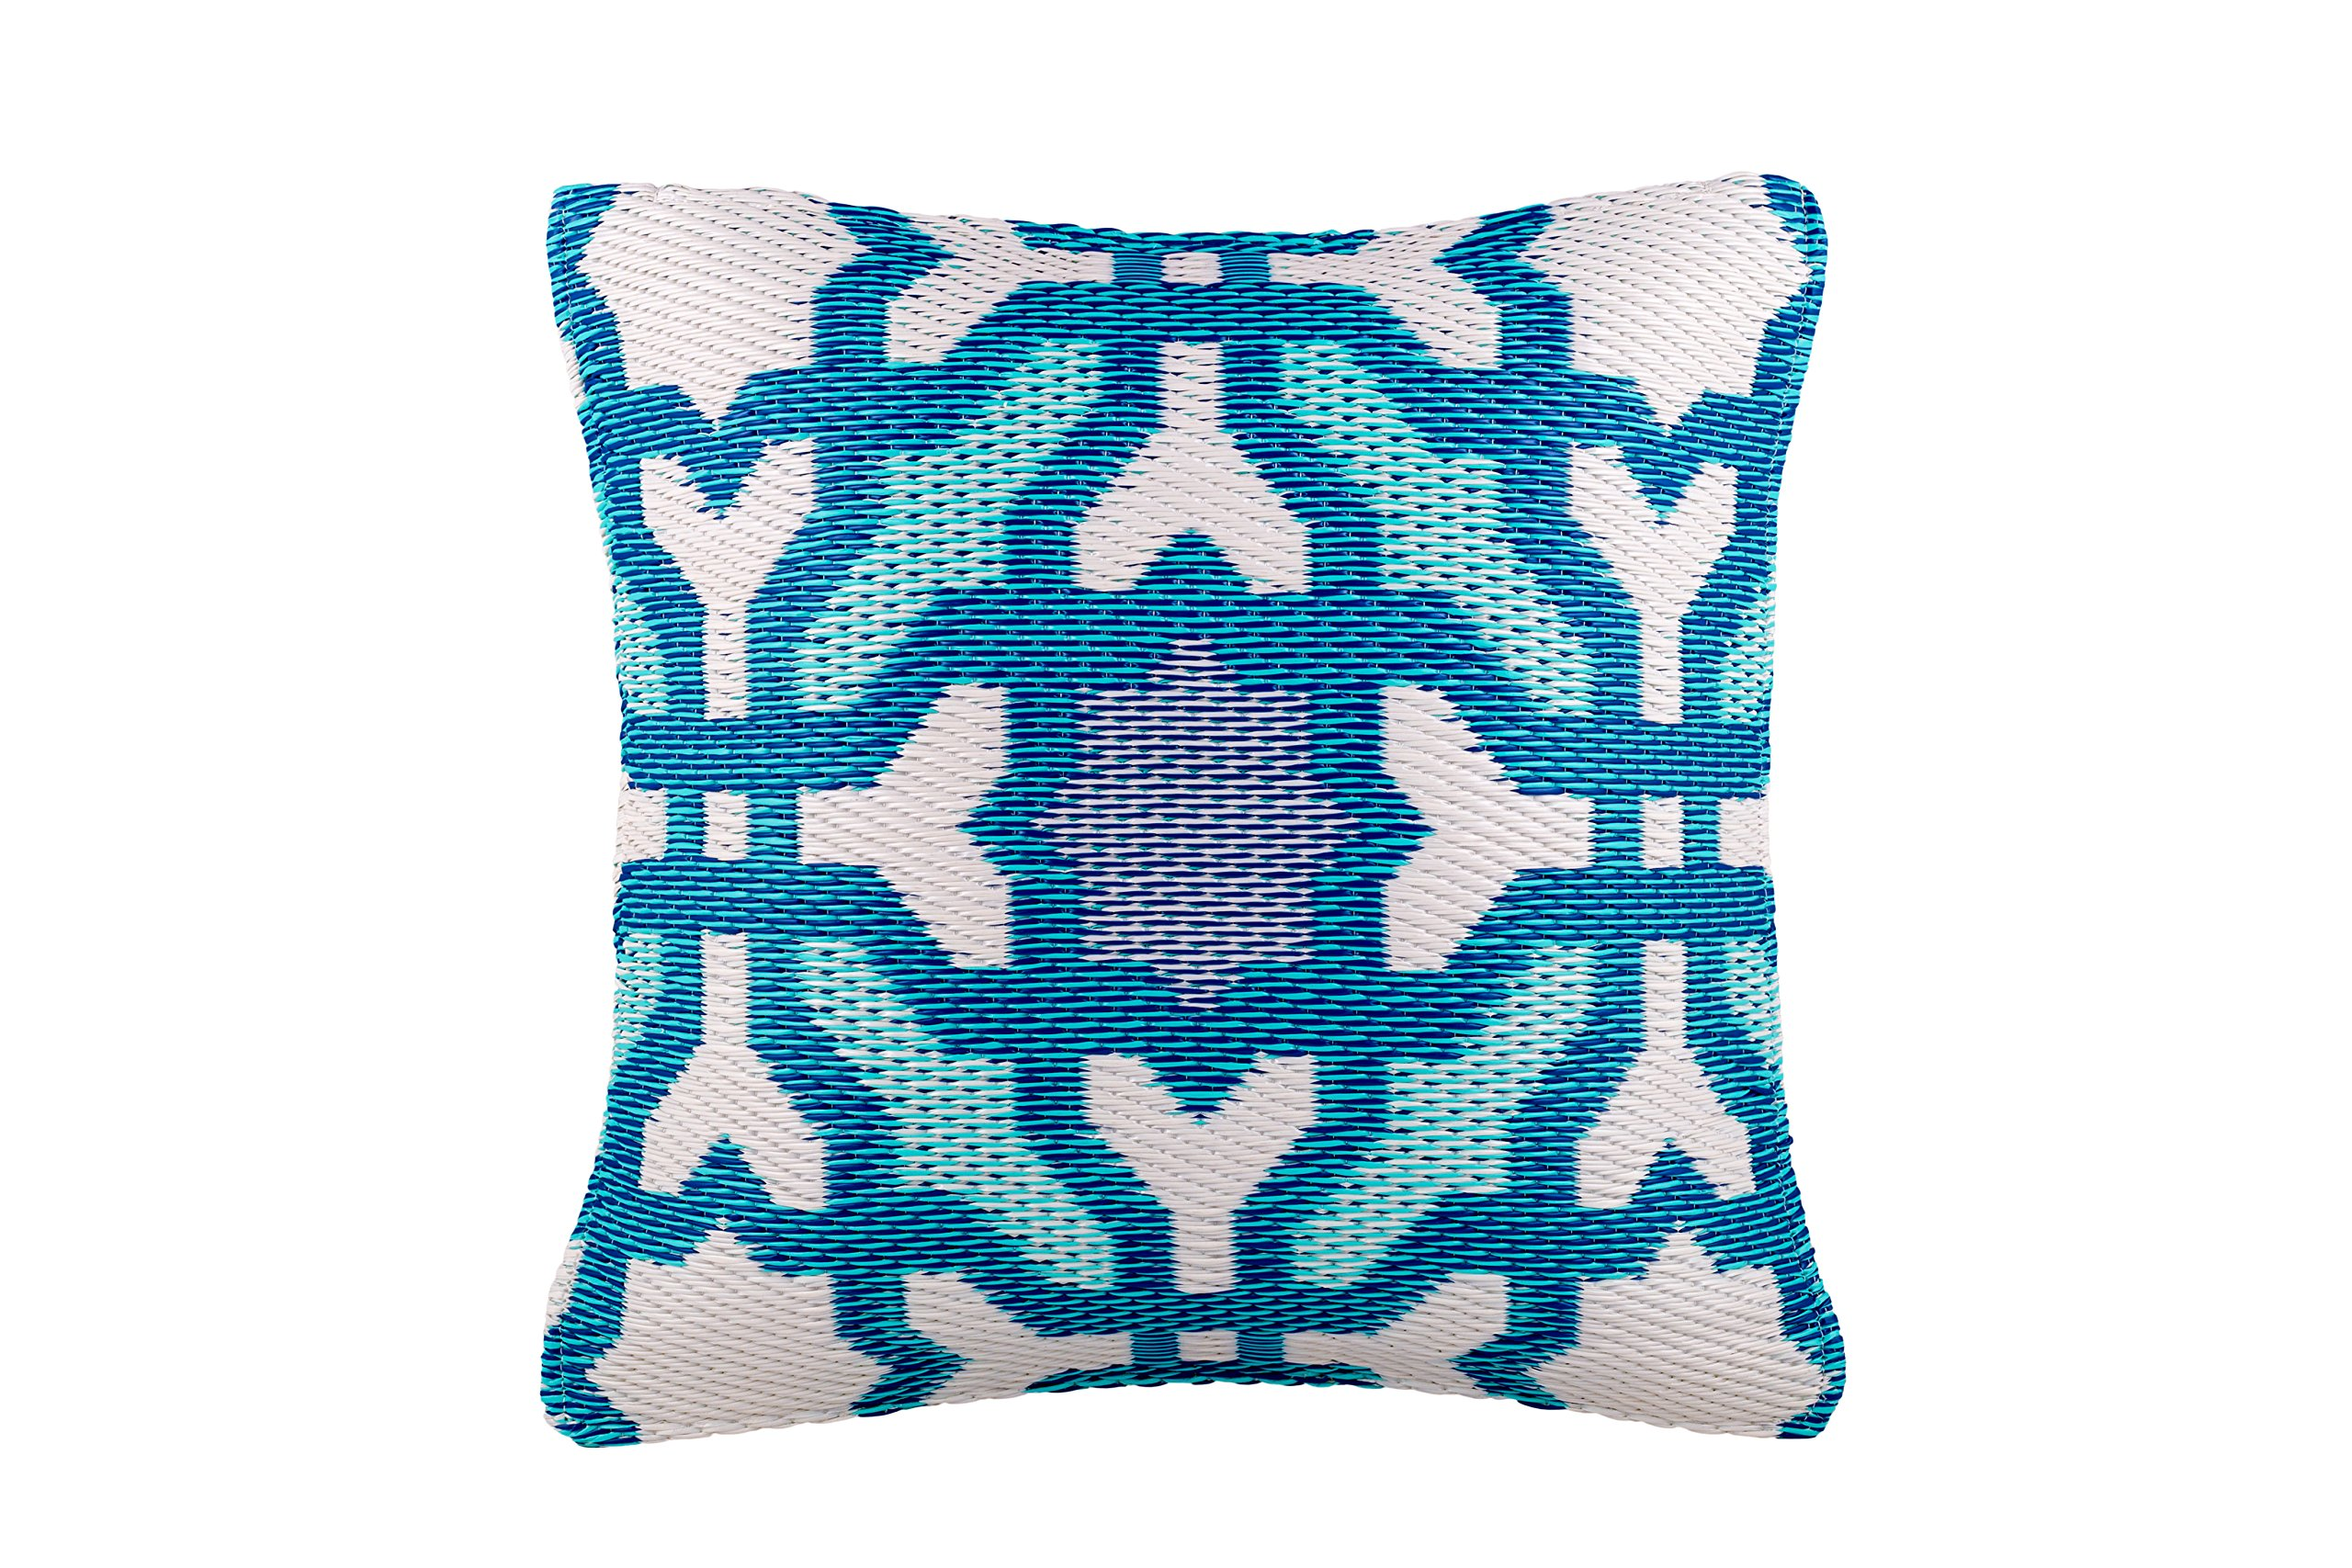 Fab Habitat Outdoor Accent Pillow, UV & Weather Resistant, Recycled Plastic - Seville - Multicolor Blue (20'' x 20'')